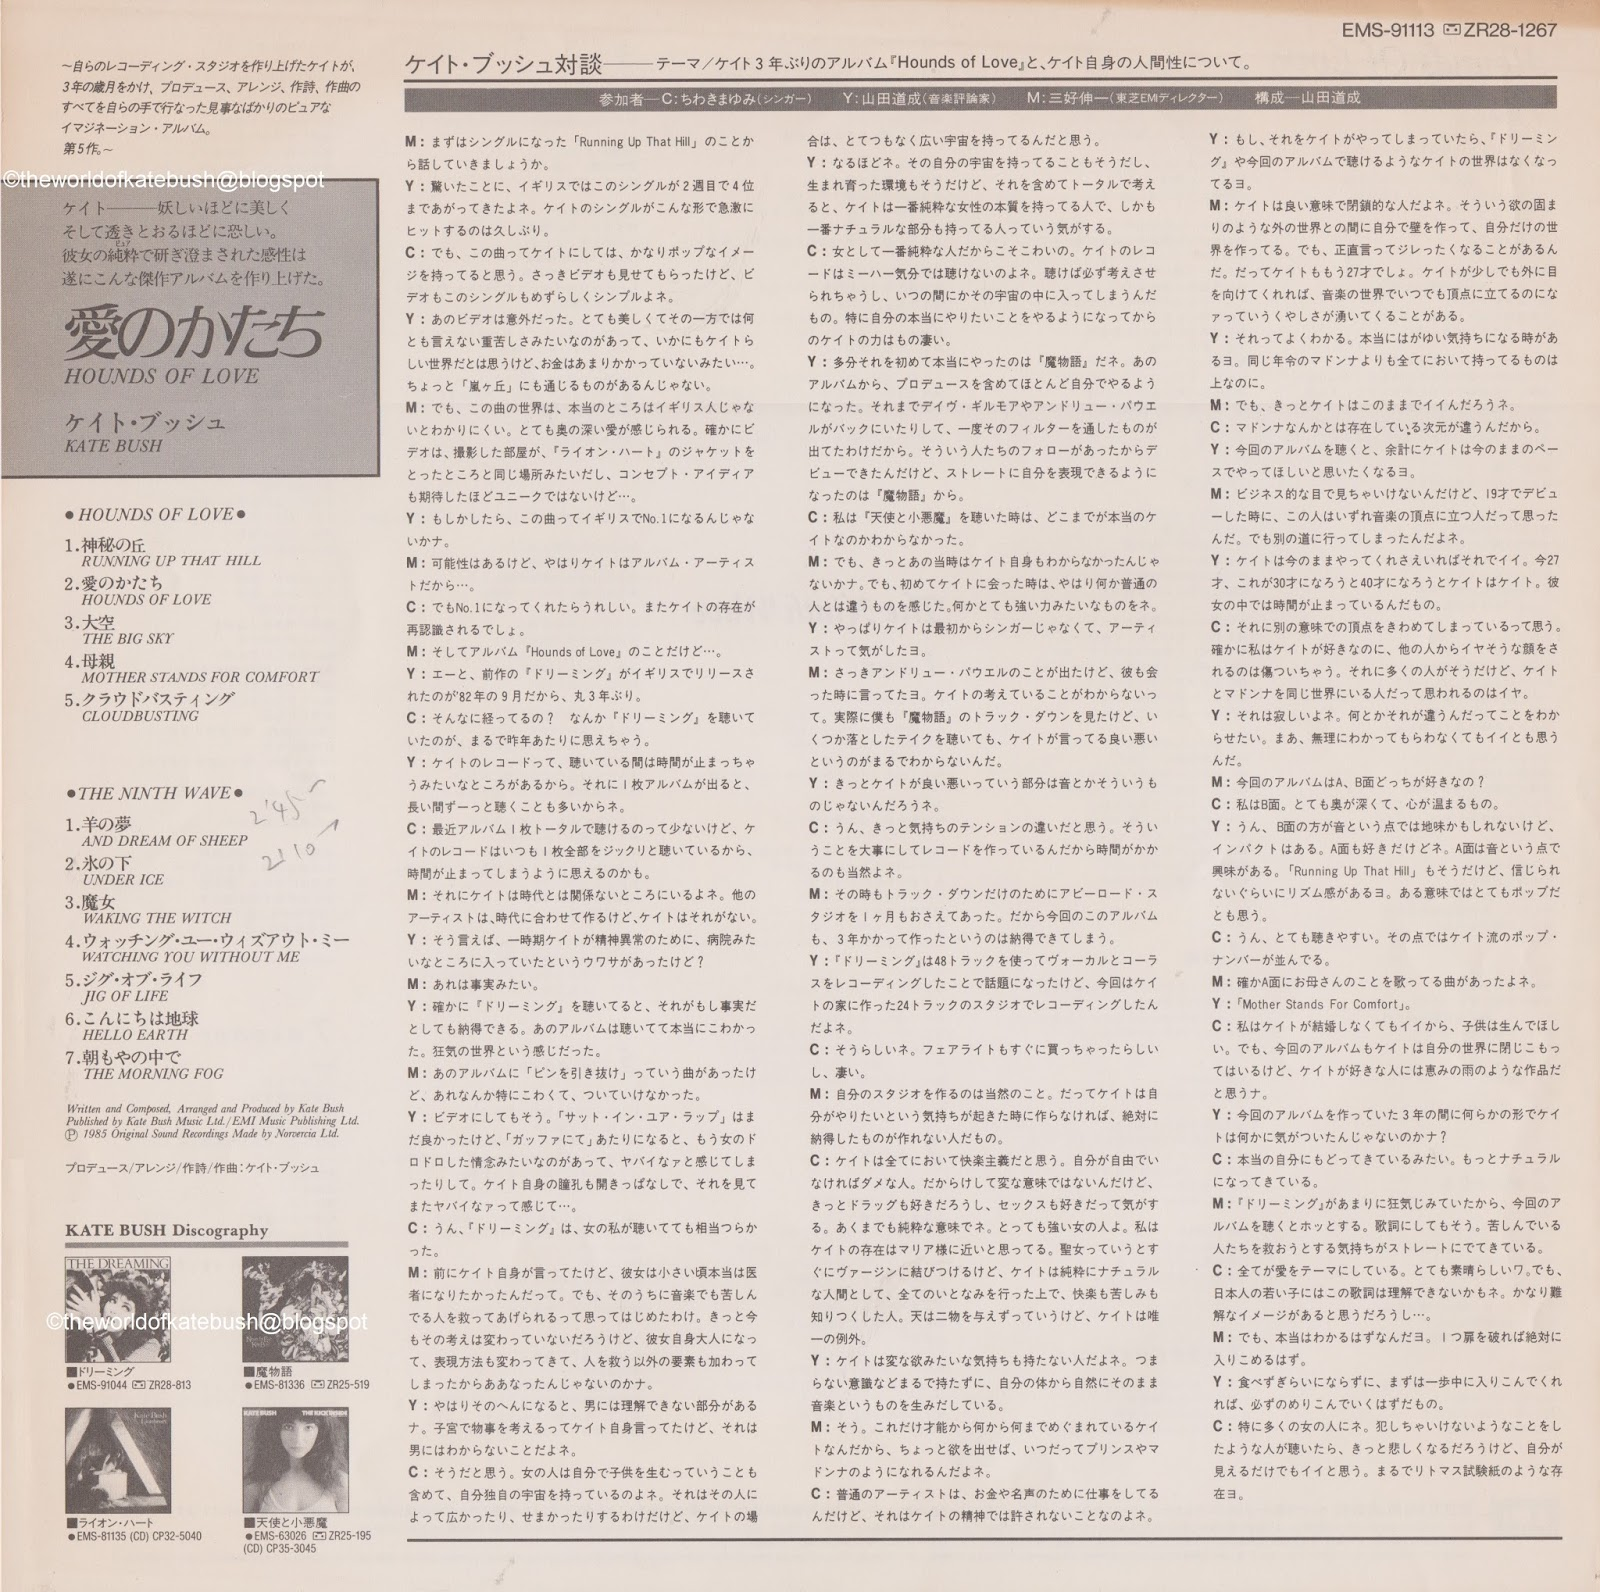 THE WORLD OF KATE BUSH: Hounds of Love - Japan LP Promo